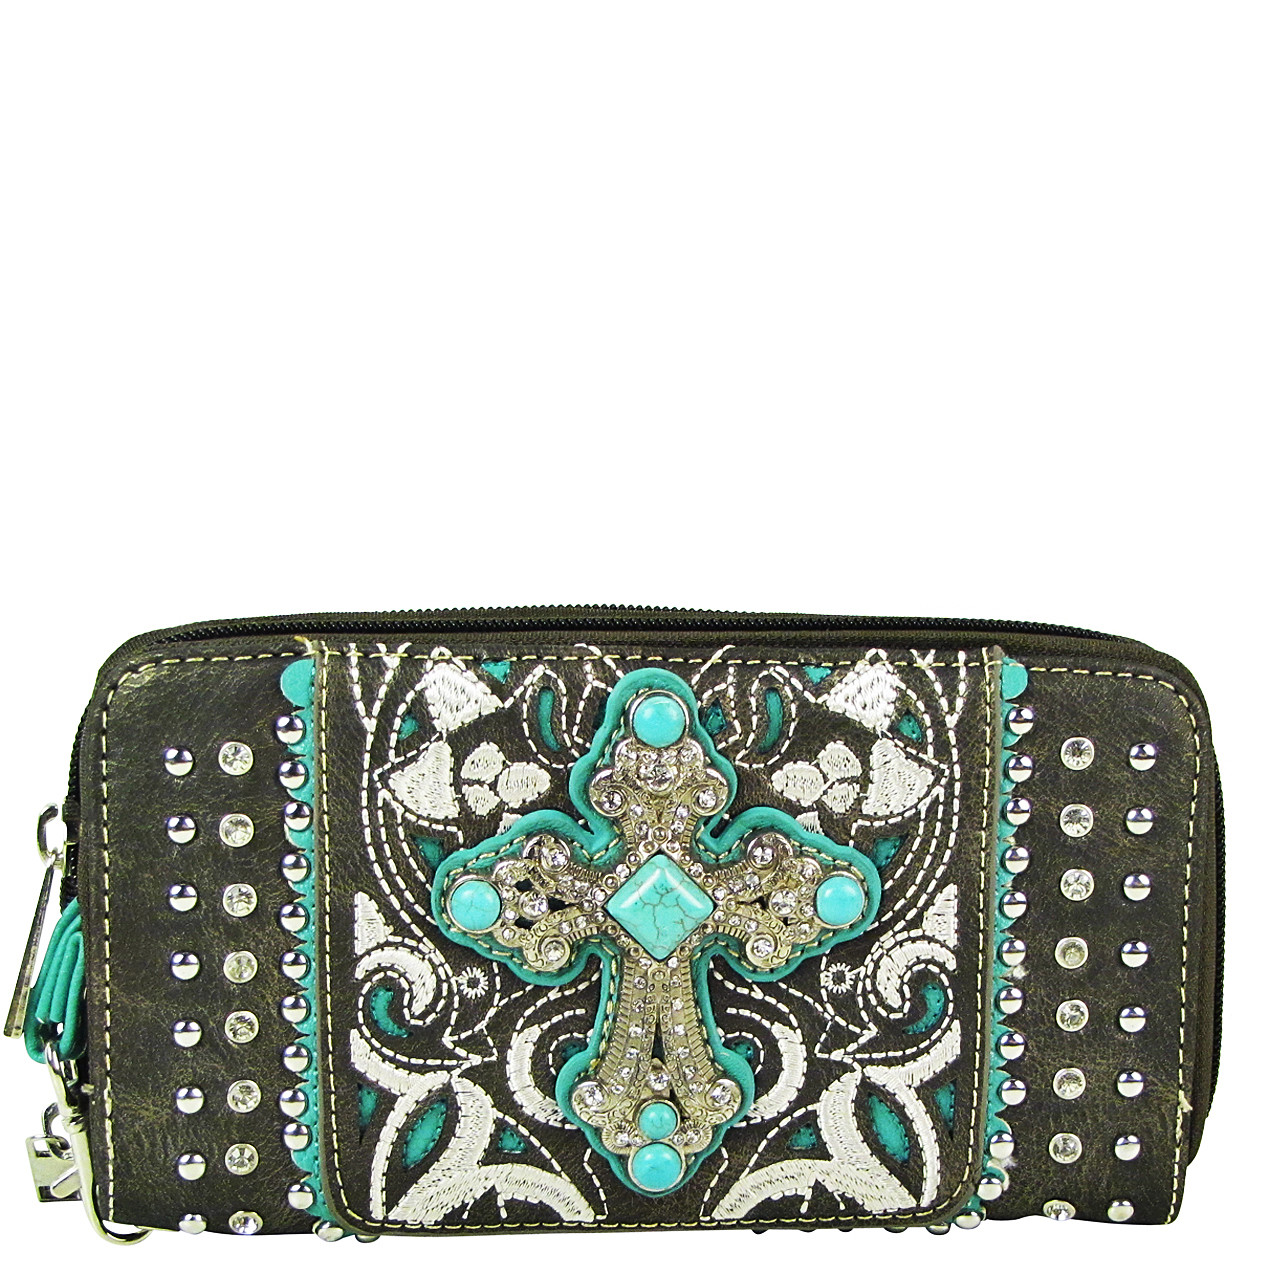 GRAY STUDDED RHINESTONE CROSS LOOK ZIPPER WALLET CB3-0409GRY